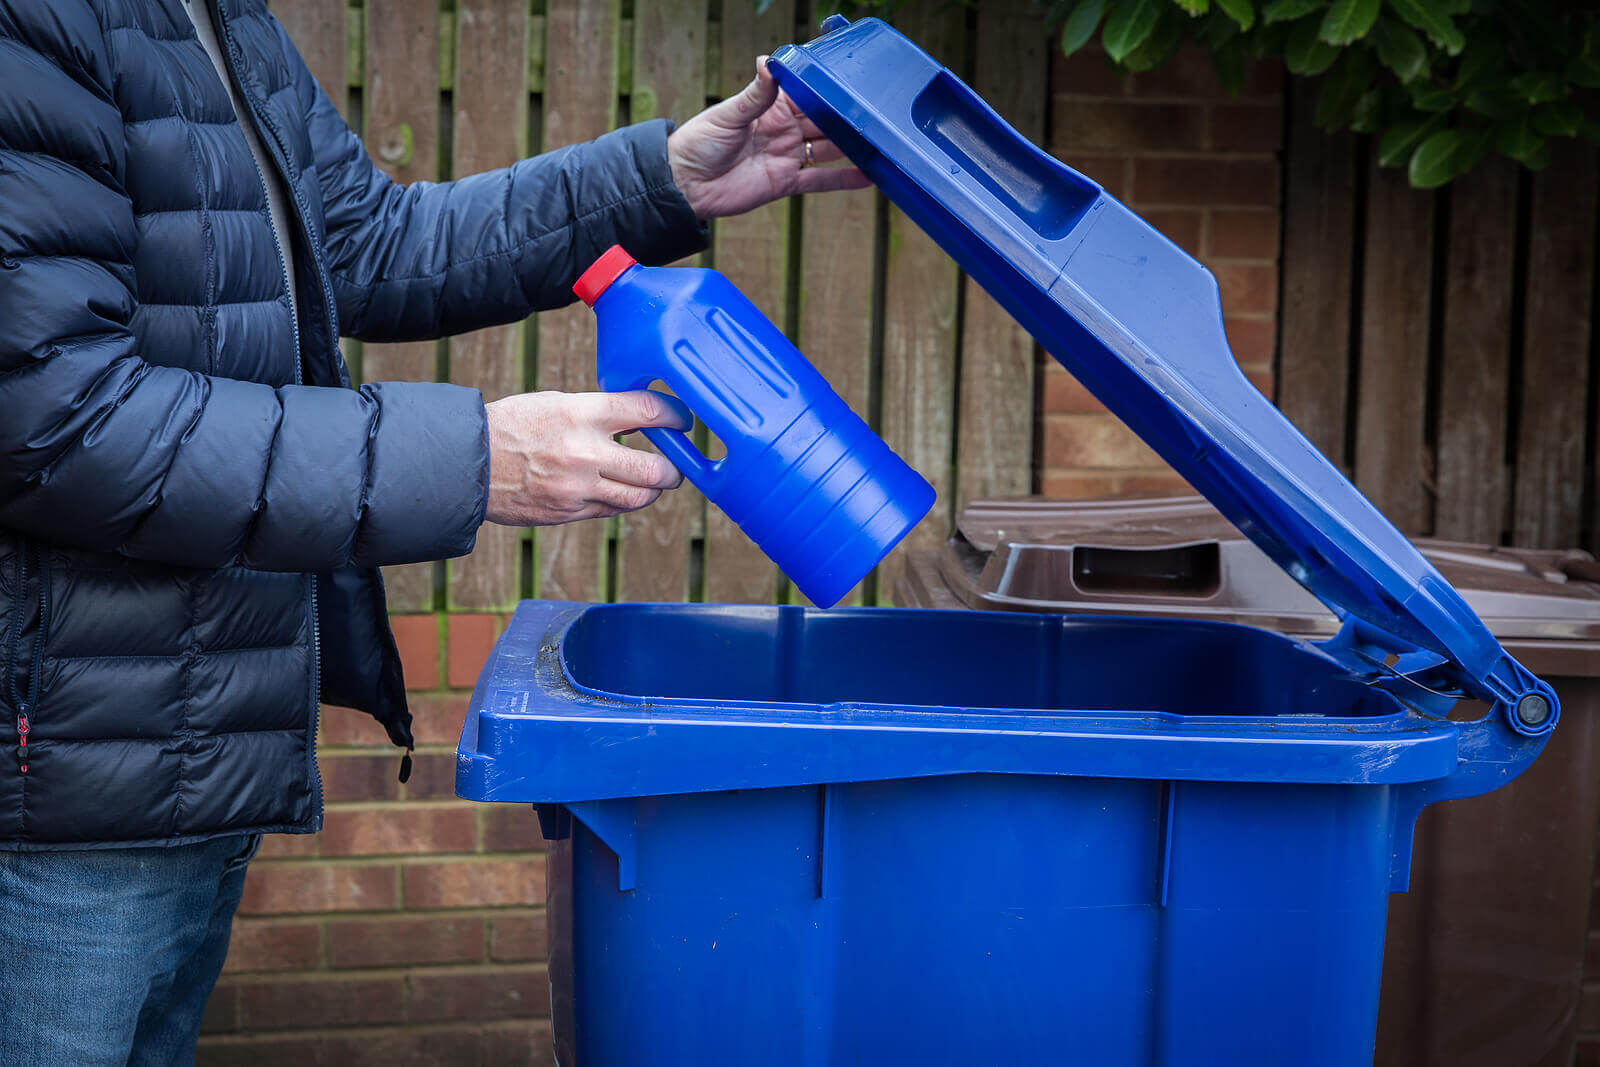 A man recycling a plastic bottle in a wheelie bin